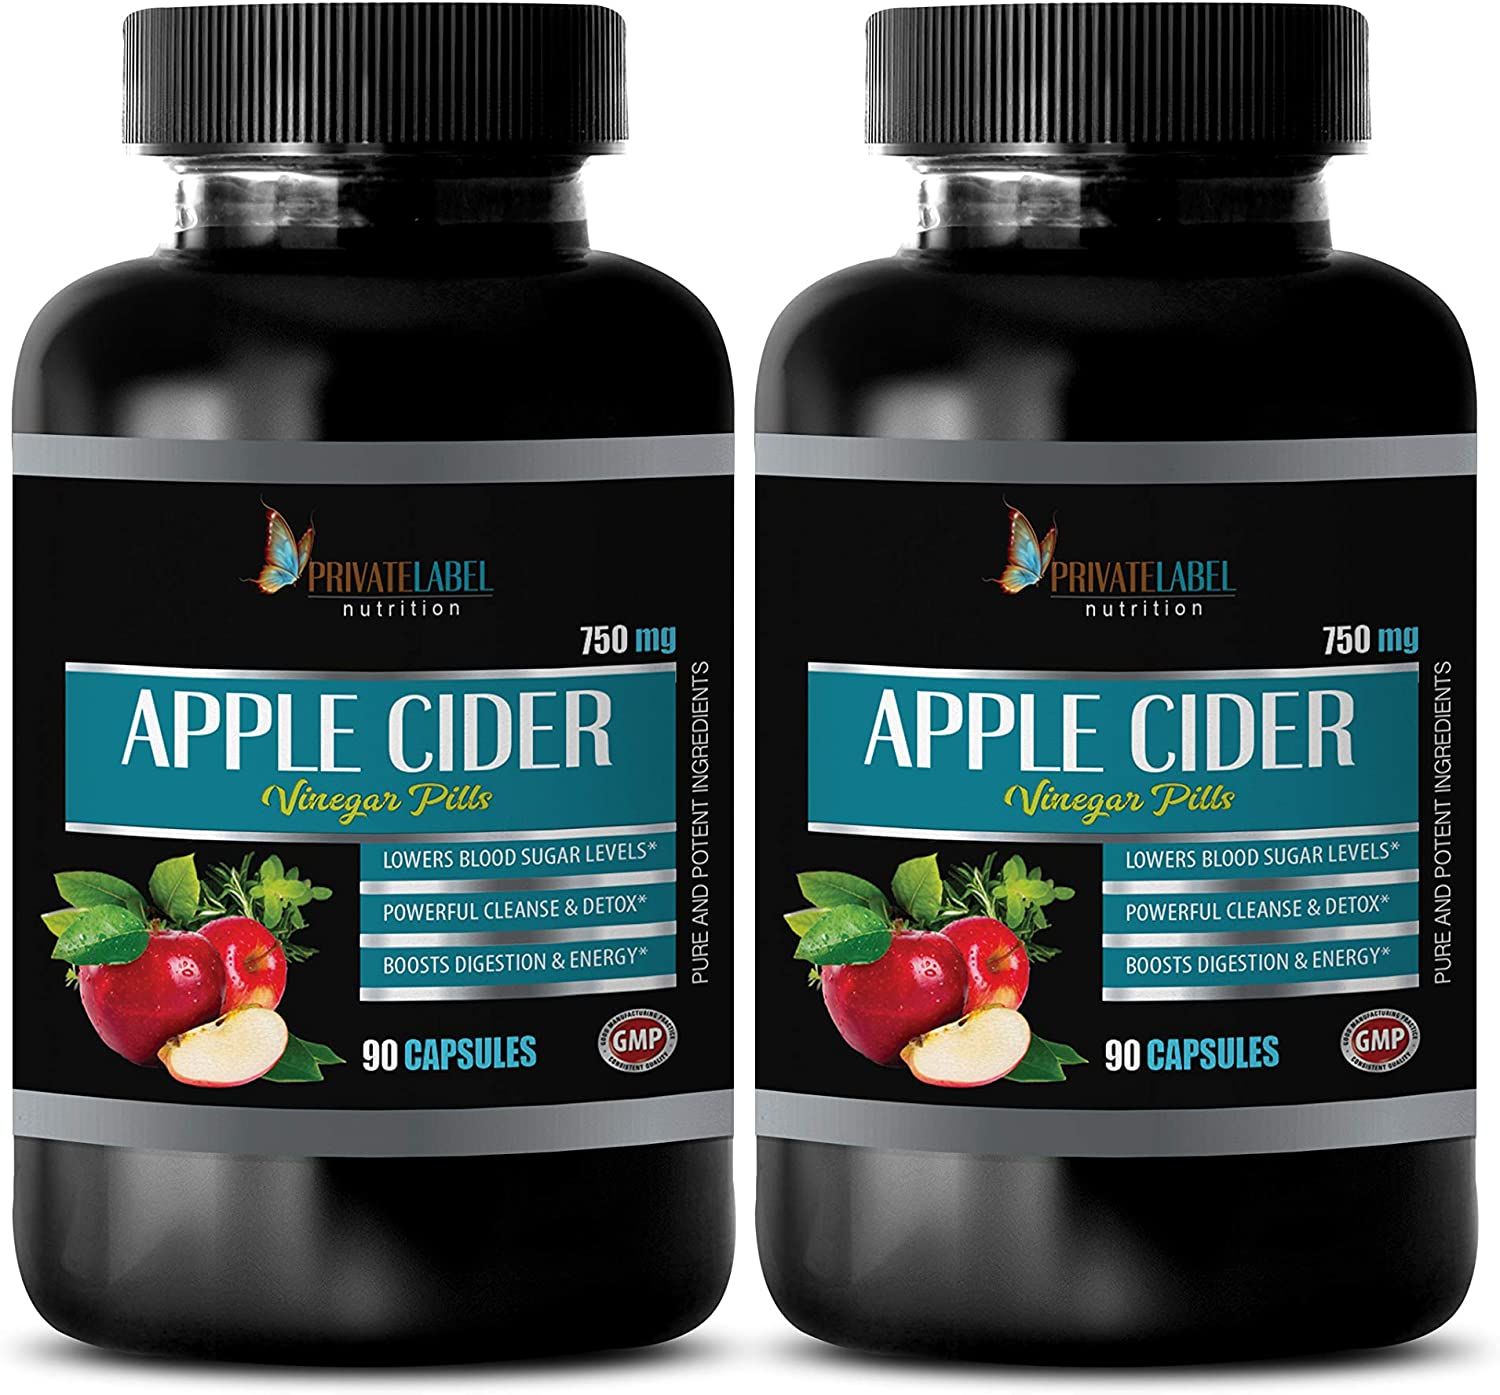 Cholesterol lowering Supplements That Work - Apple Cider Vinegar Pills 750 MG - boosts Digestion and Energy, Lowers Blood Sugar Levels - spirulina Supplement - 2B (180 Capsules)